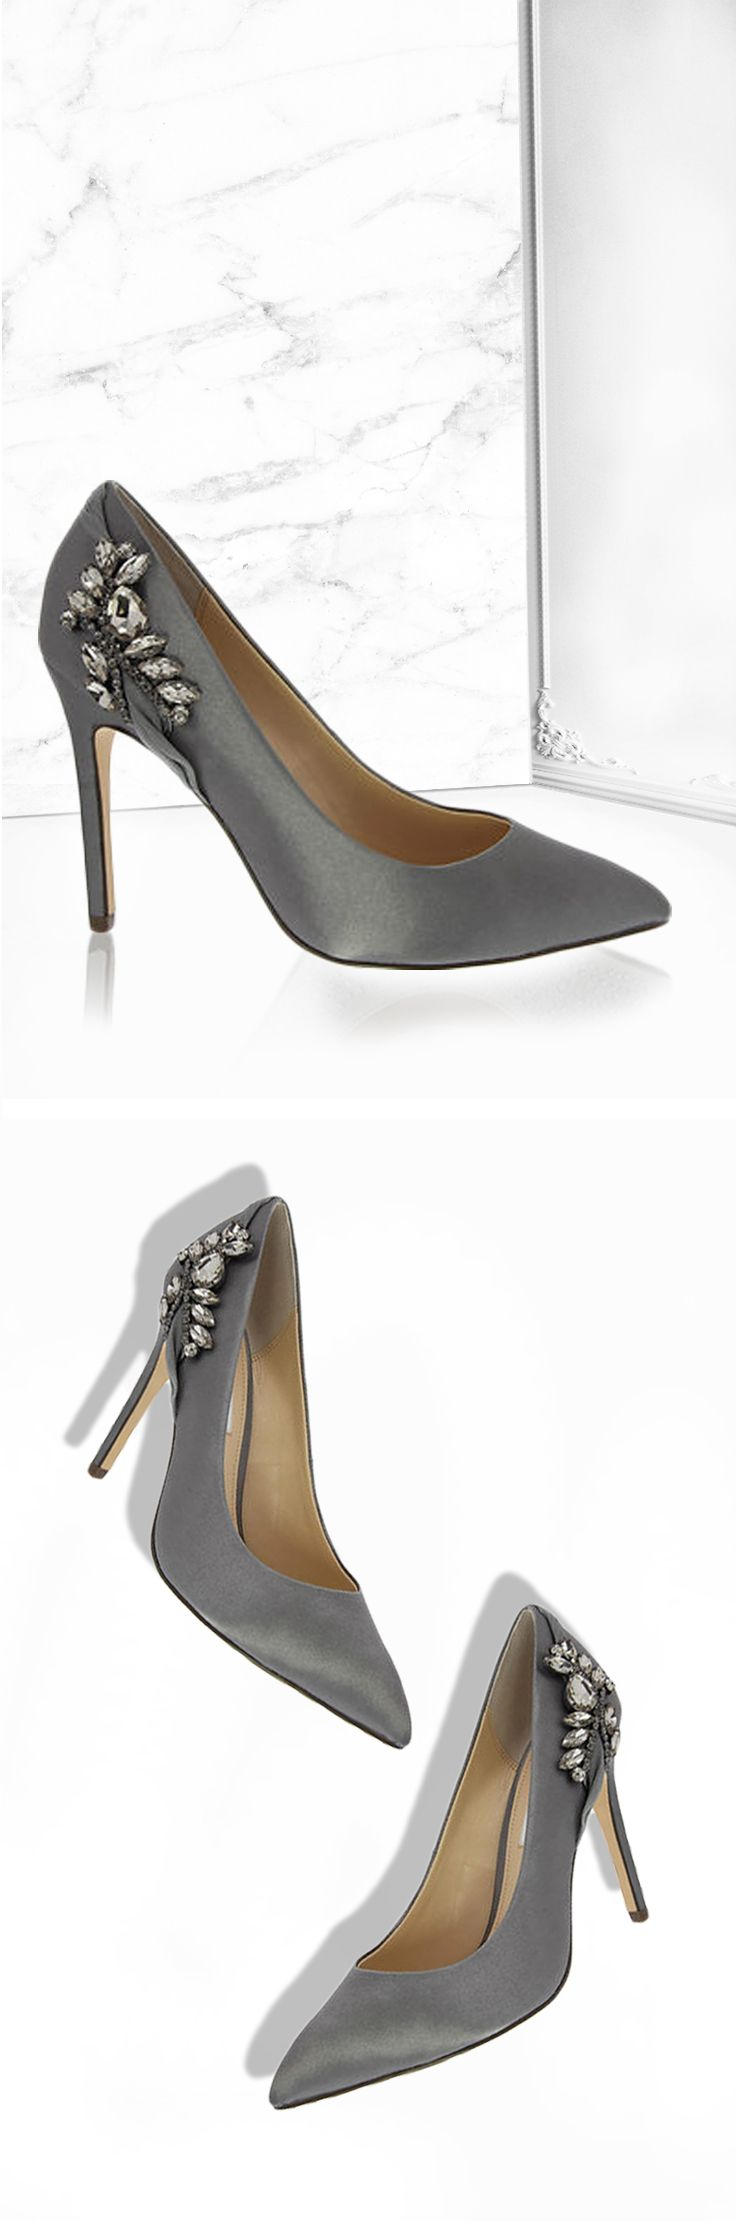 Metal dust crystal satin pumps with unique floral crystal detailing. Going out heels just hit a whole new level of beautiful! | Nina Shoes Rhonae NinaShoes.com